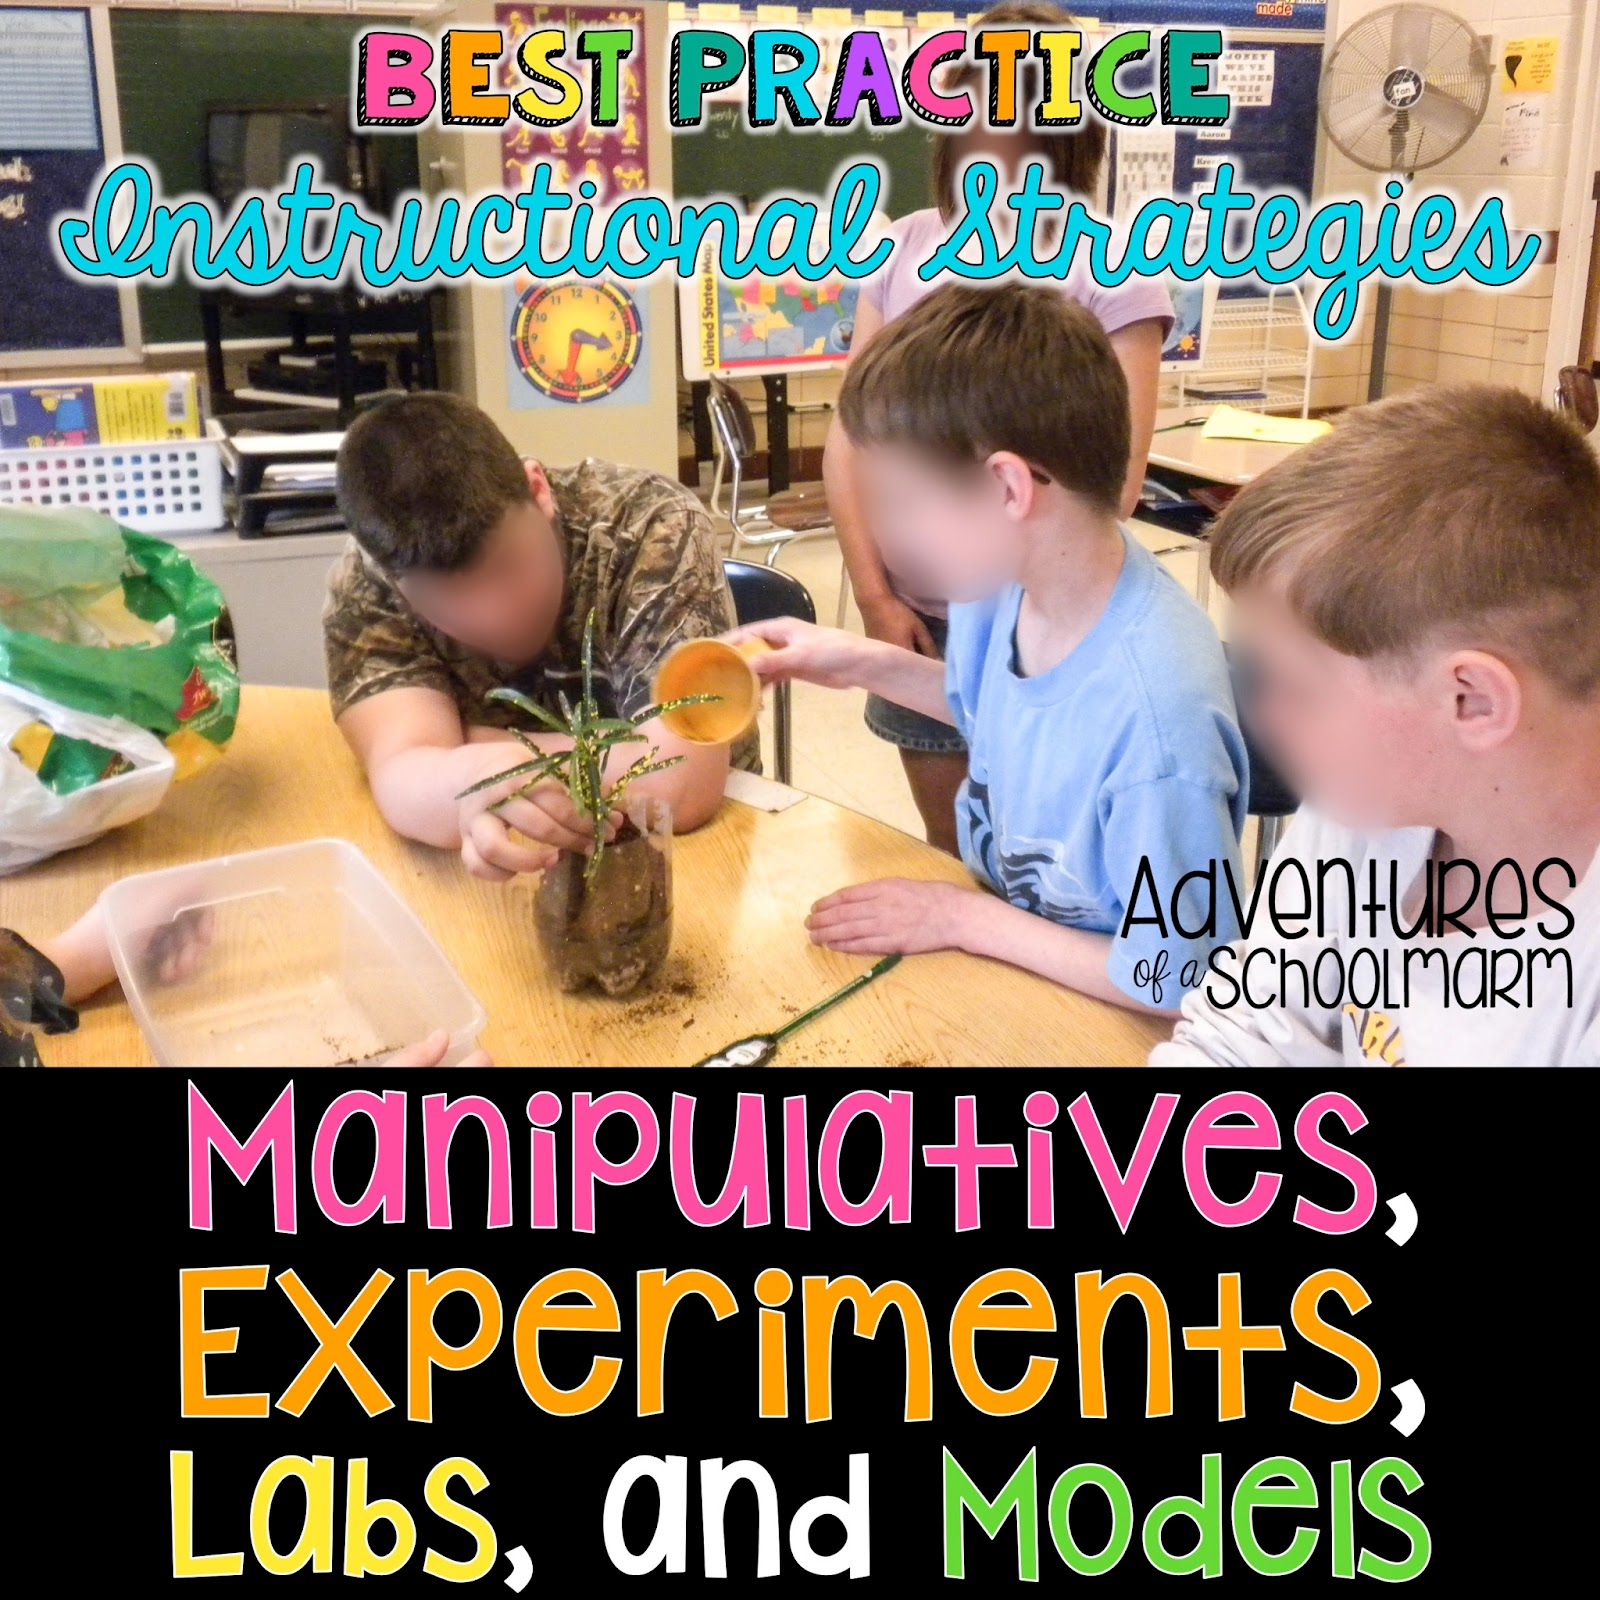 Worksheet Worksheets Don T Grow Dendrites worksheets dont grow dendrites manipulatives experiments labs i am linking up with deanna jump for our best practice book study on by marcia tate am